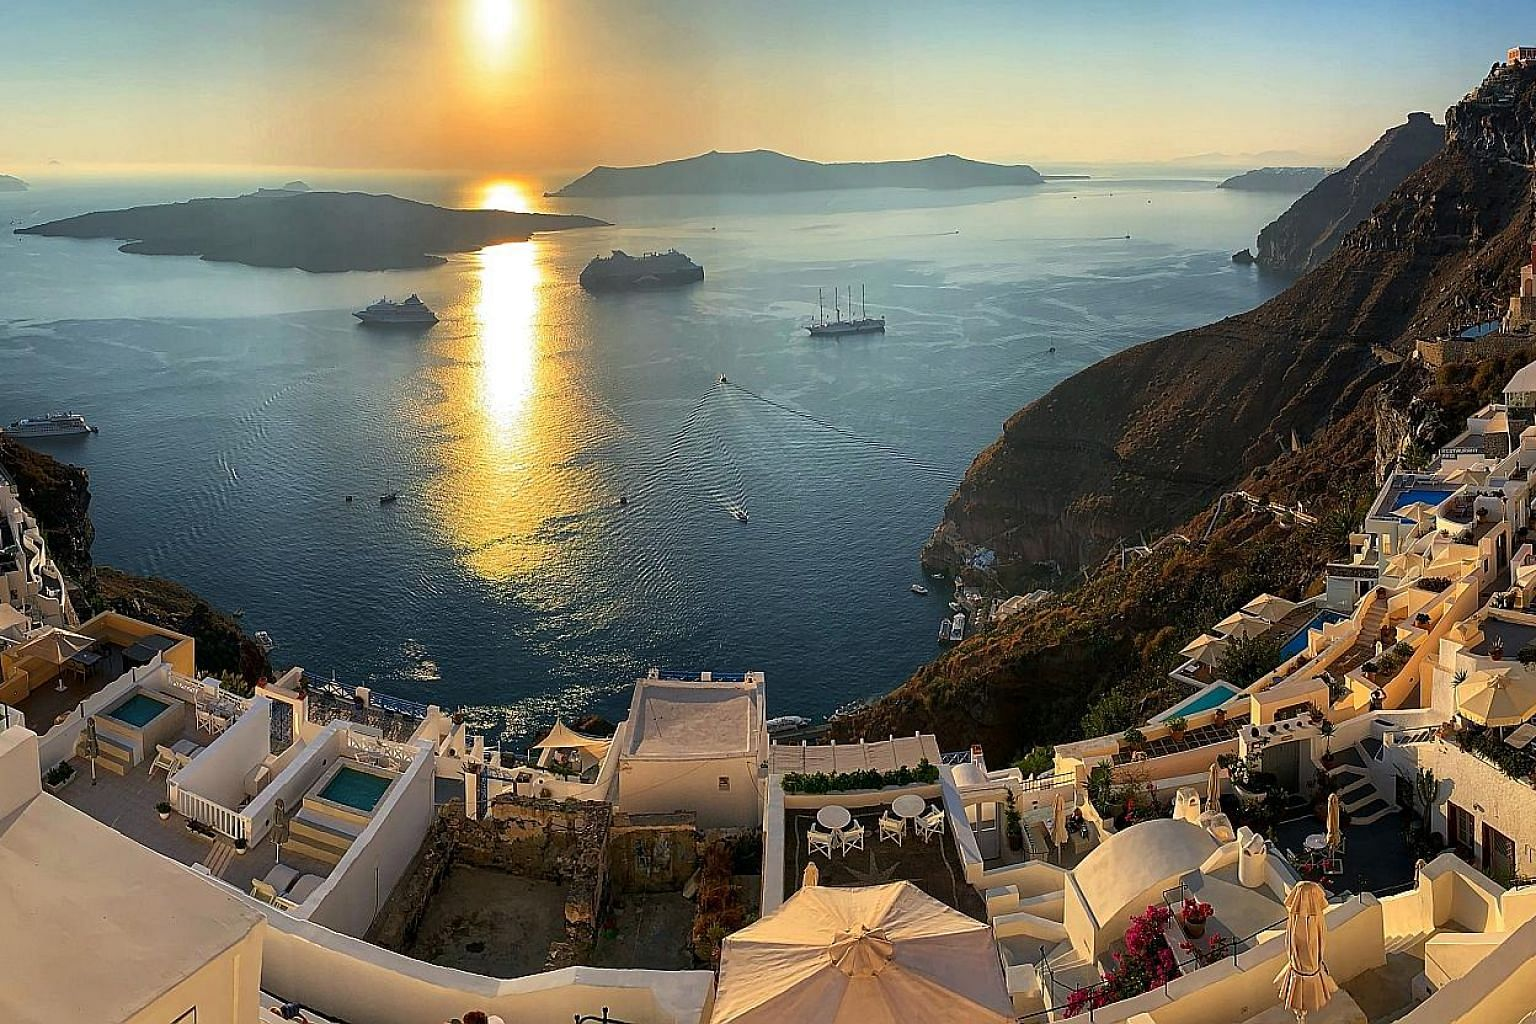 (Right) There is still an active volcano on a tiny island in the middle of Santorini's caldera and you can climb up for a 360-degree view. (Far right) A postcard-perfect sunset from Santorini's Fira village. (Above) Almost 2,000 years old, this build